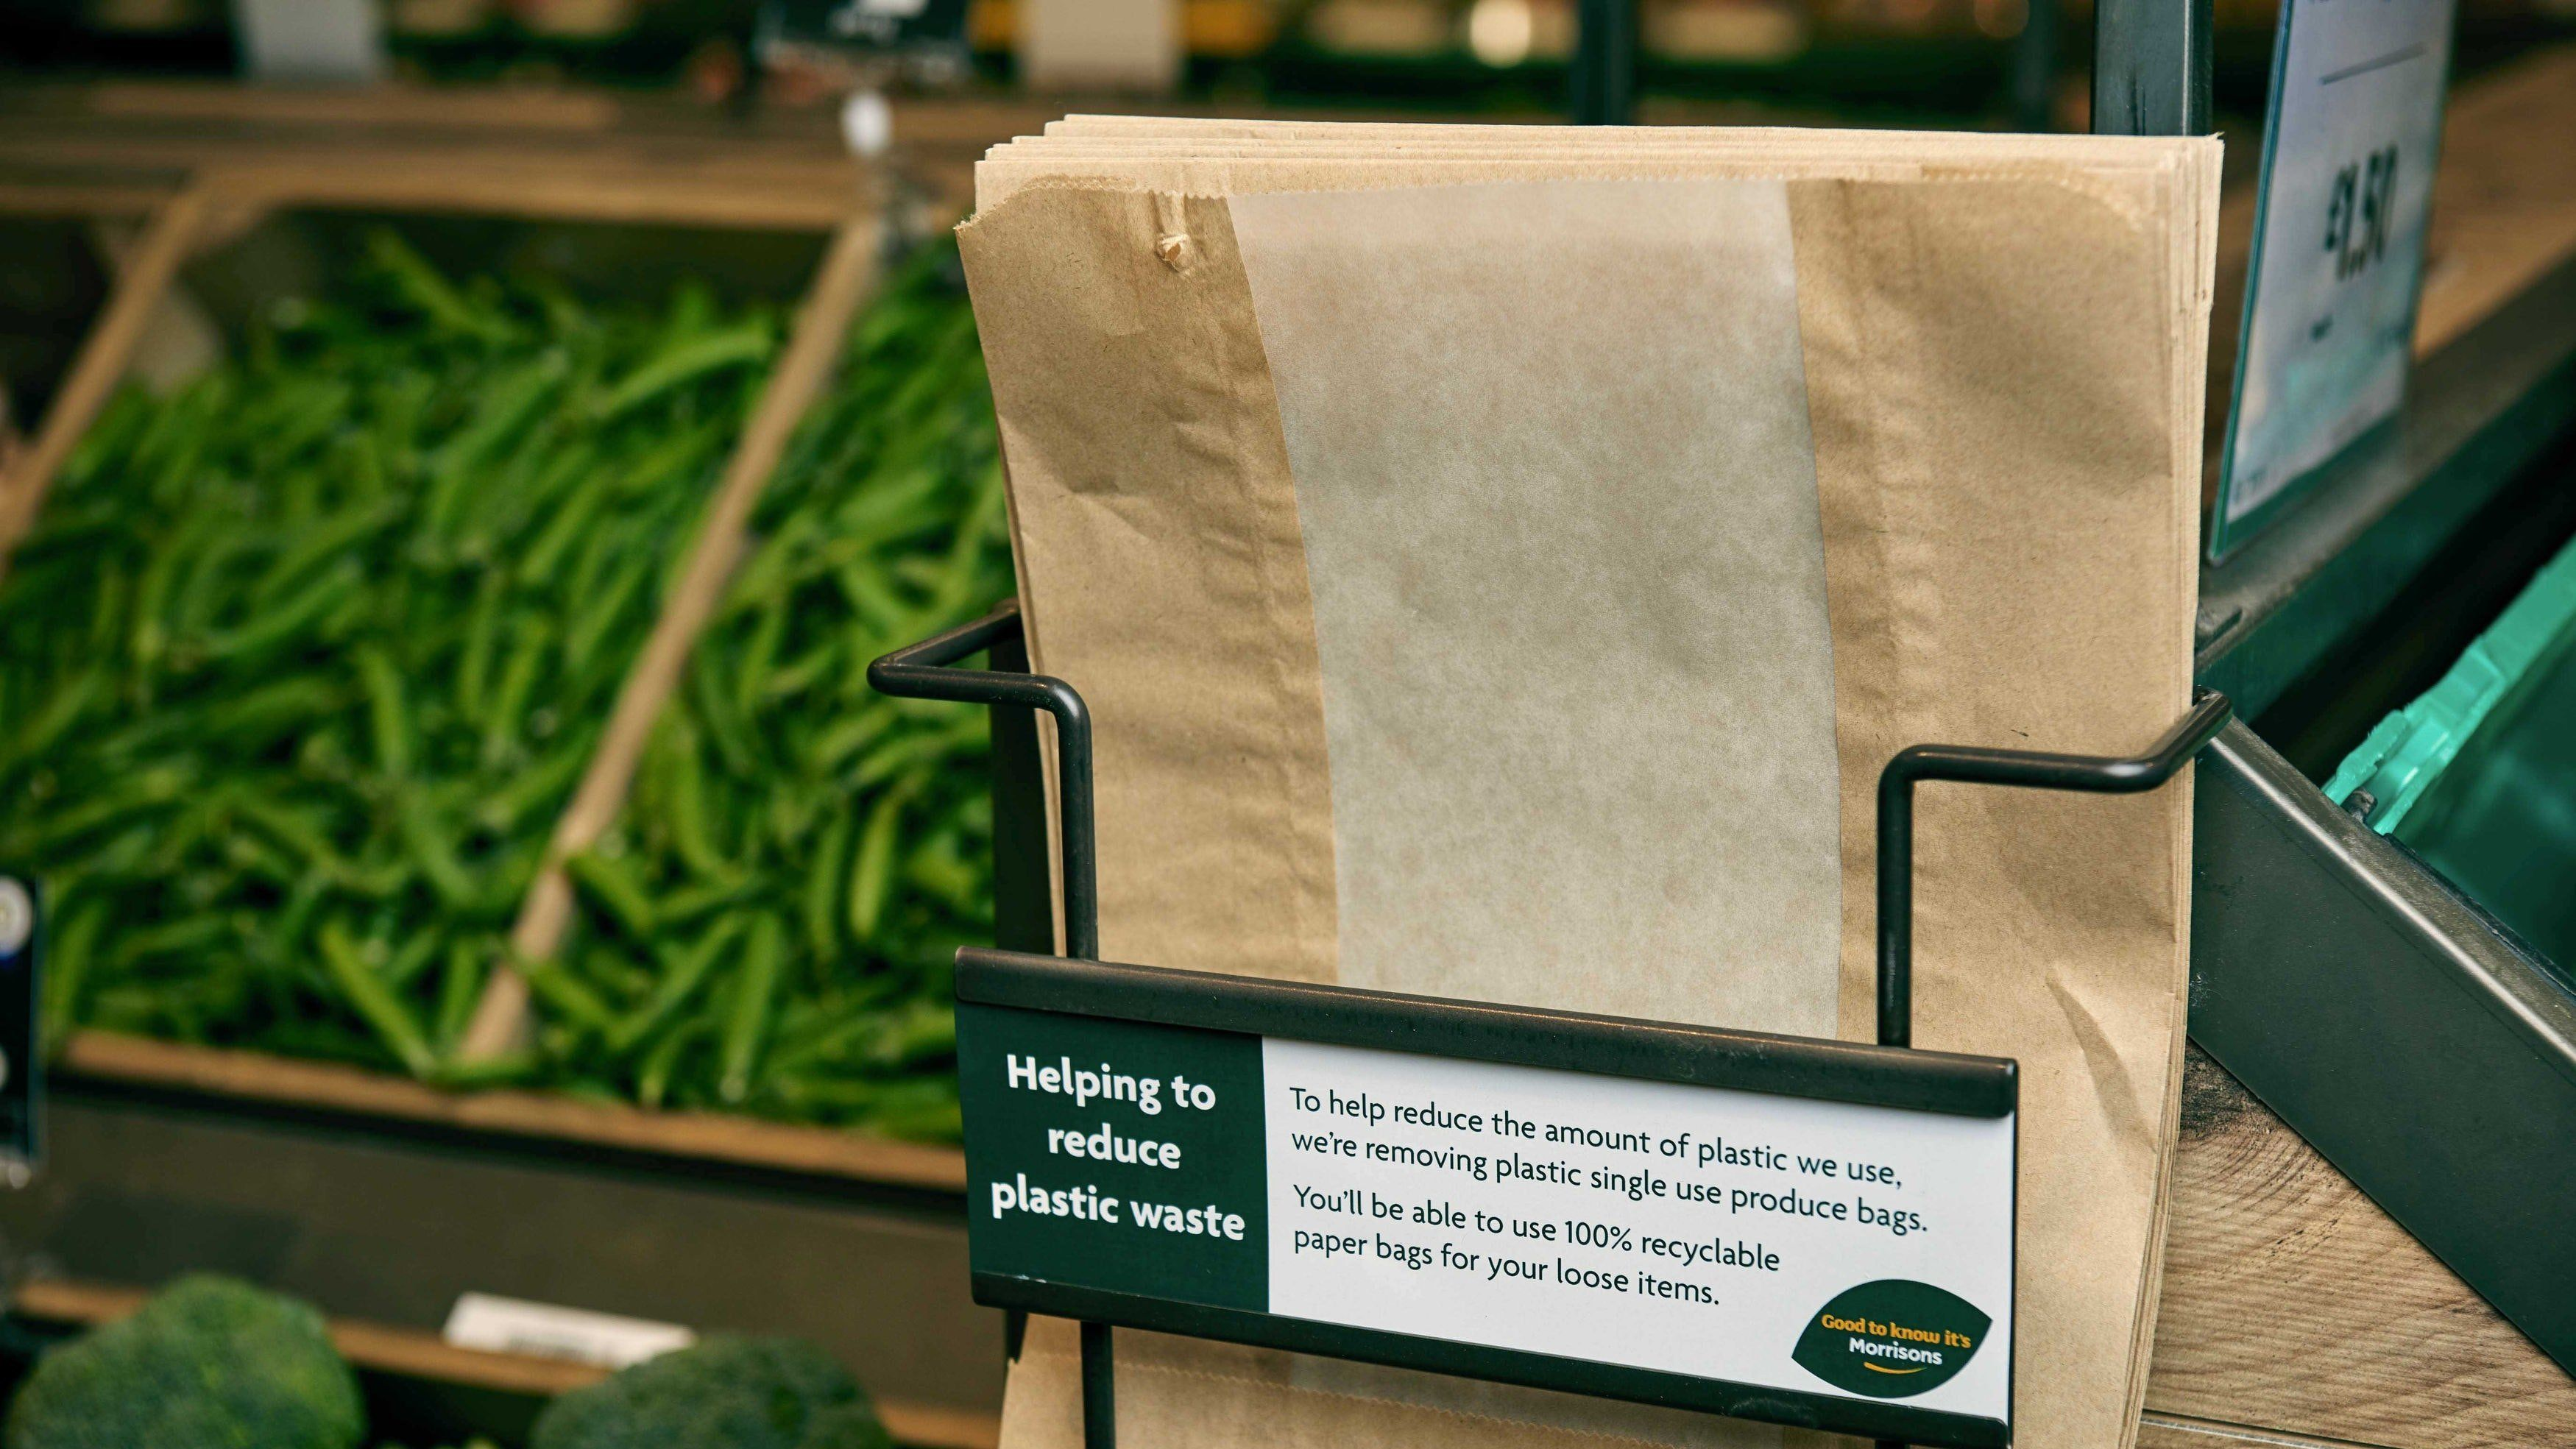 Morrisons Aims To Save 150 Million Plastic Bags Per Year With Paper Bags For Fruit And